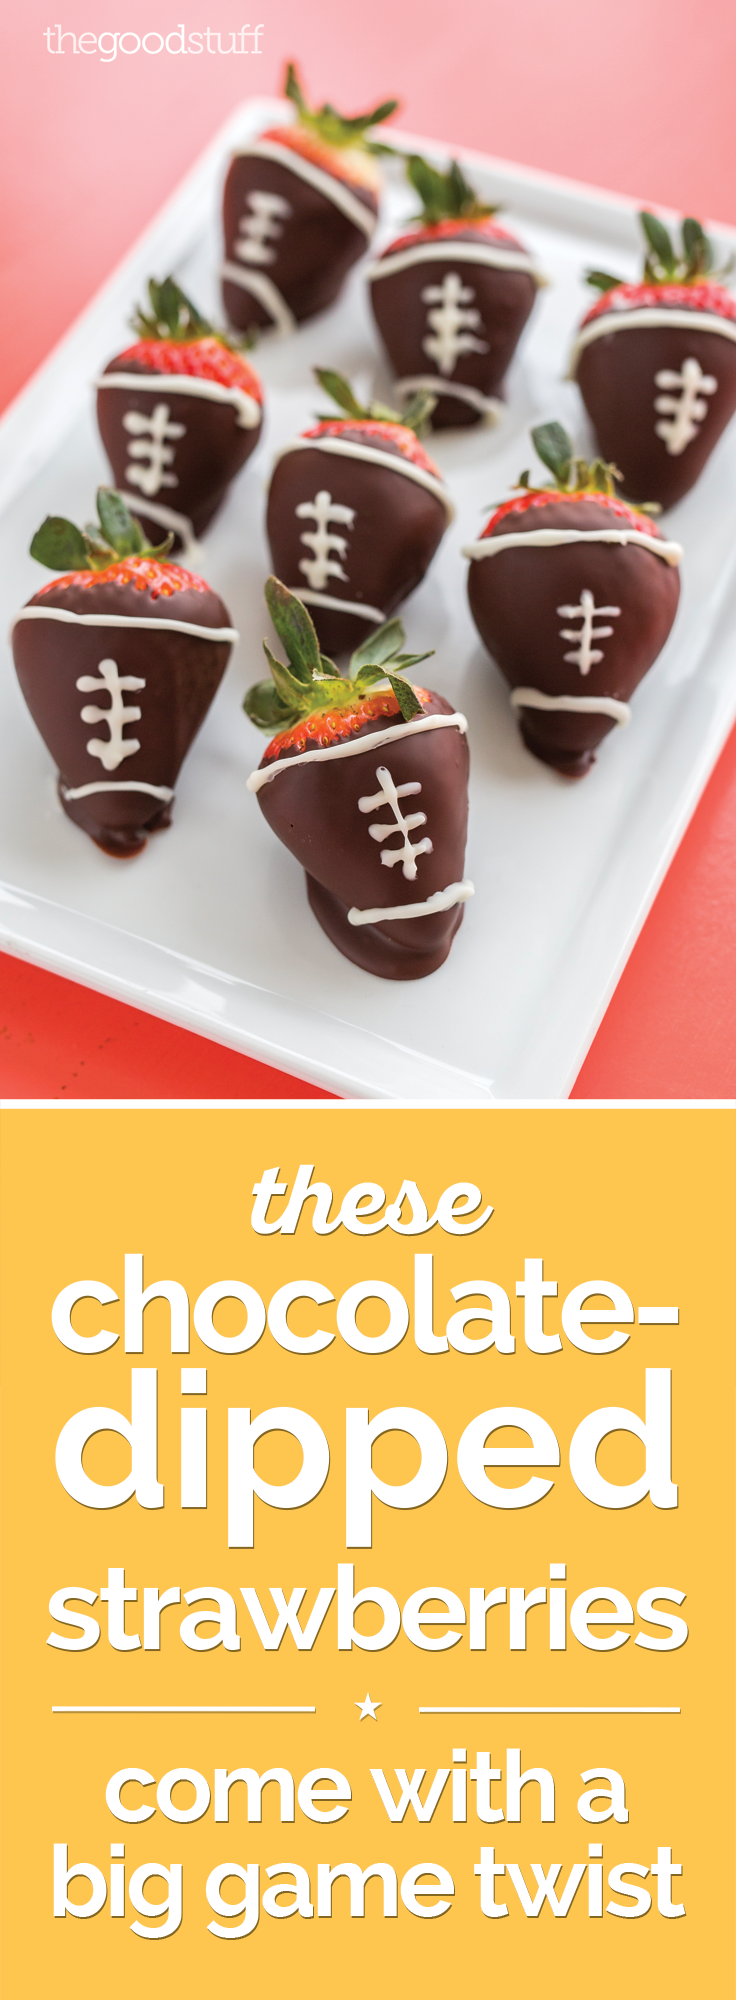 These Chocolate-Dipped Strawberries Come with a Big Game Twist | thegoodstuff